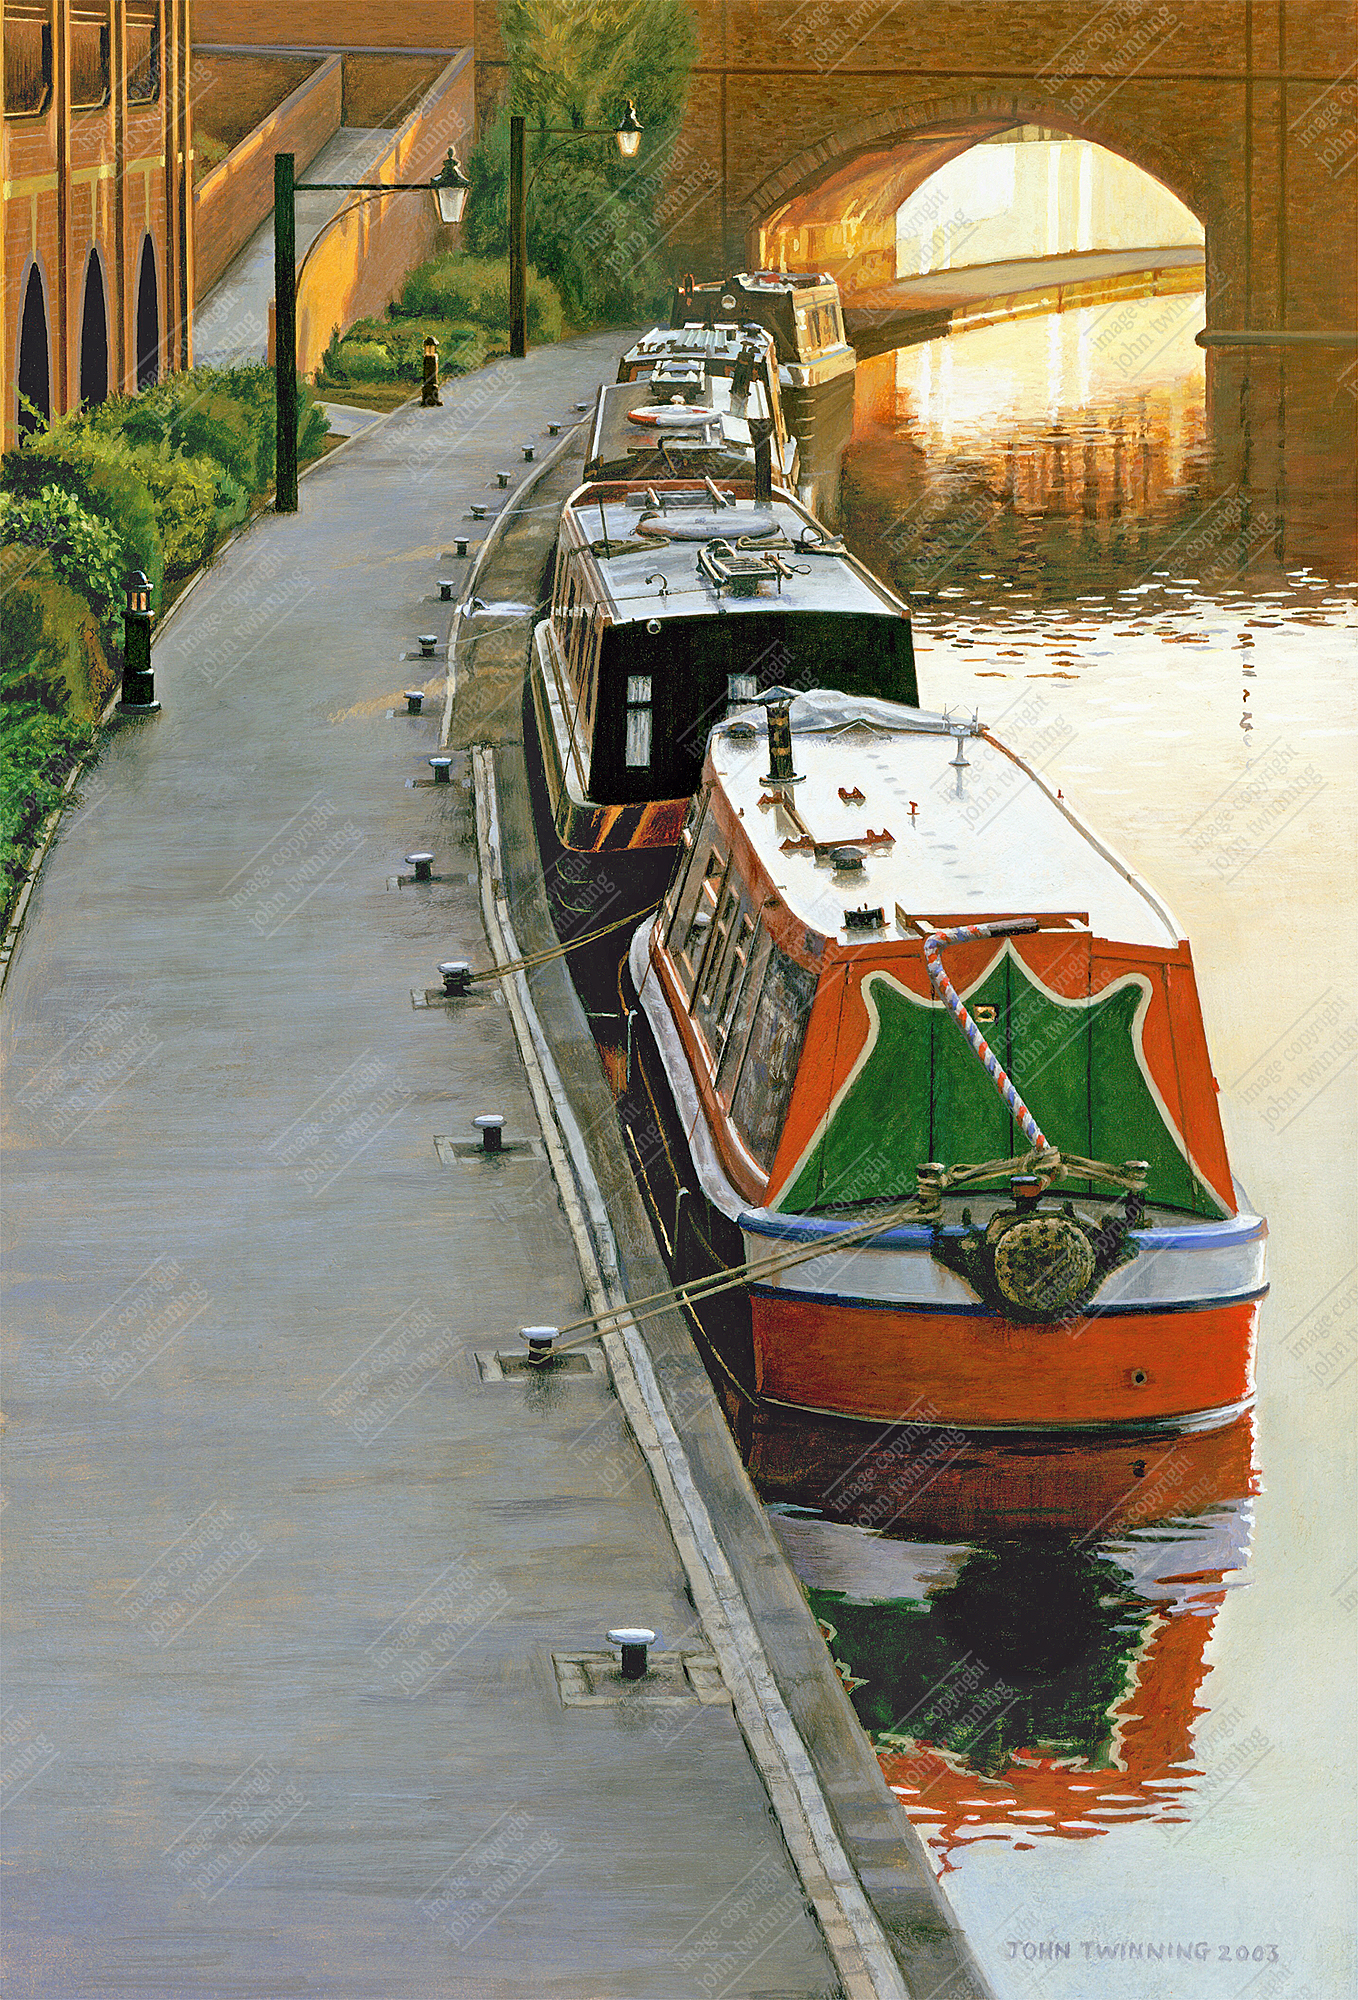 Canal boats at rest, Sheepcote Street